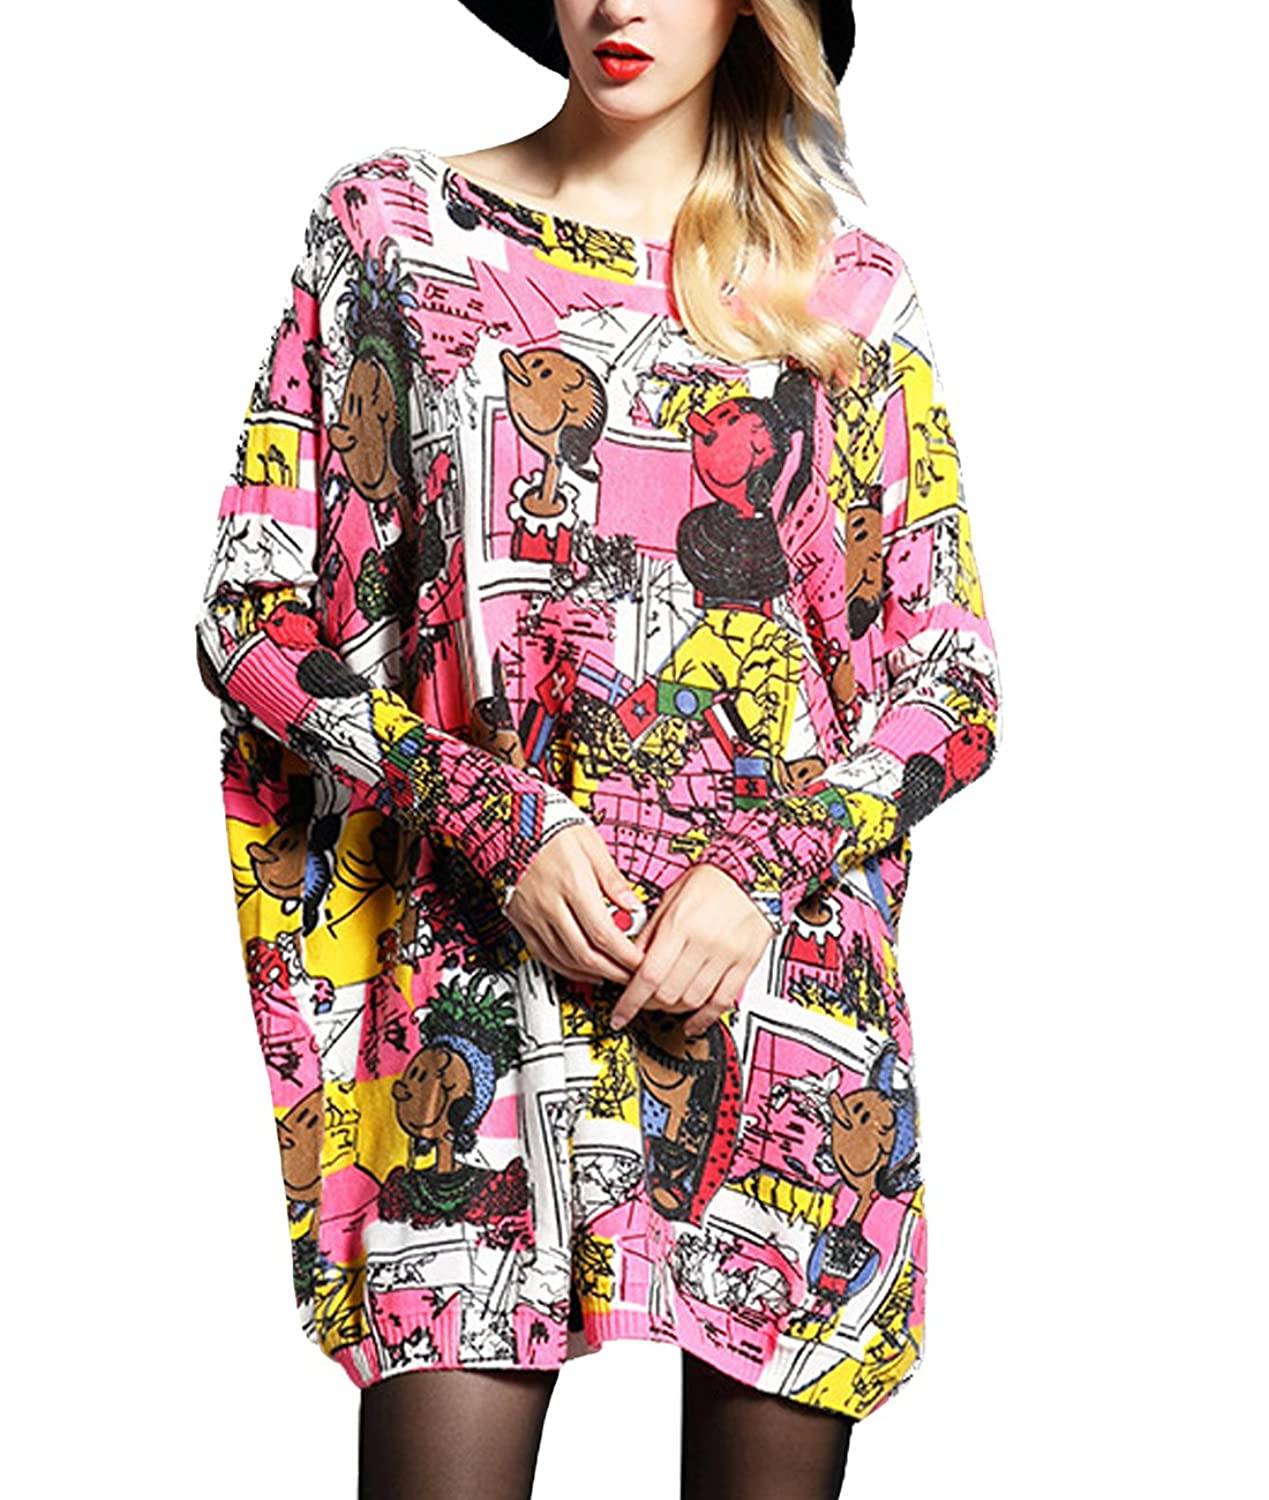 Femirah Women's Cartoon Print Knitted Pullover Sweater Dress One Size